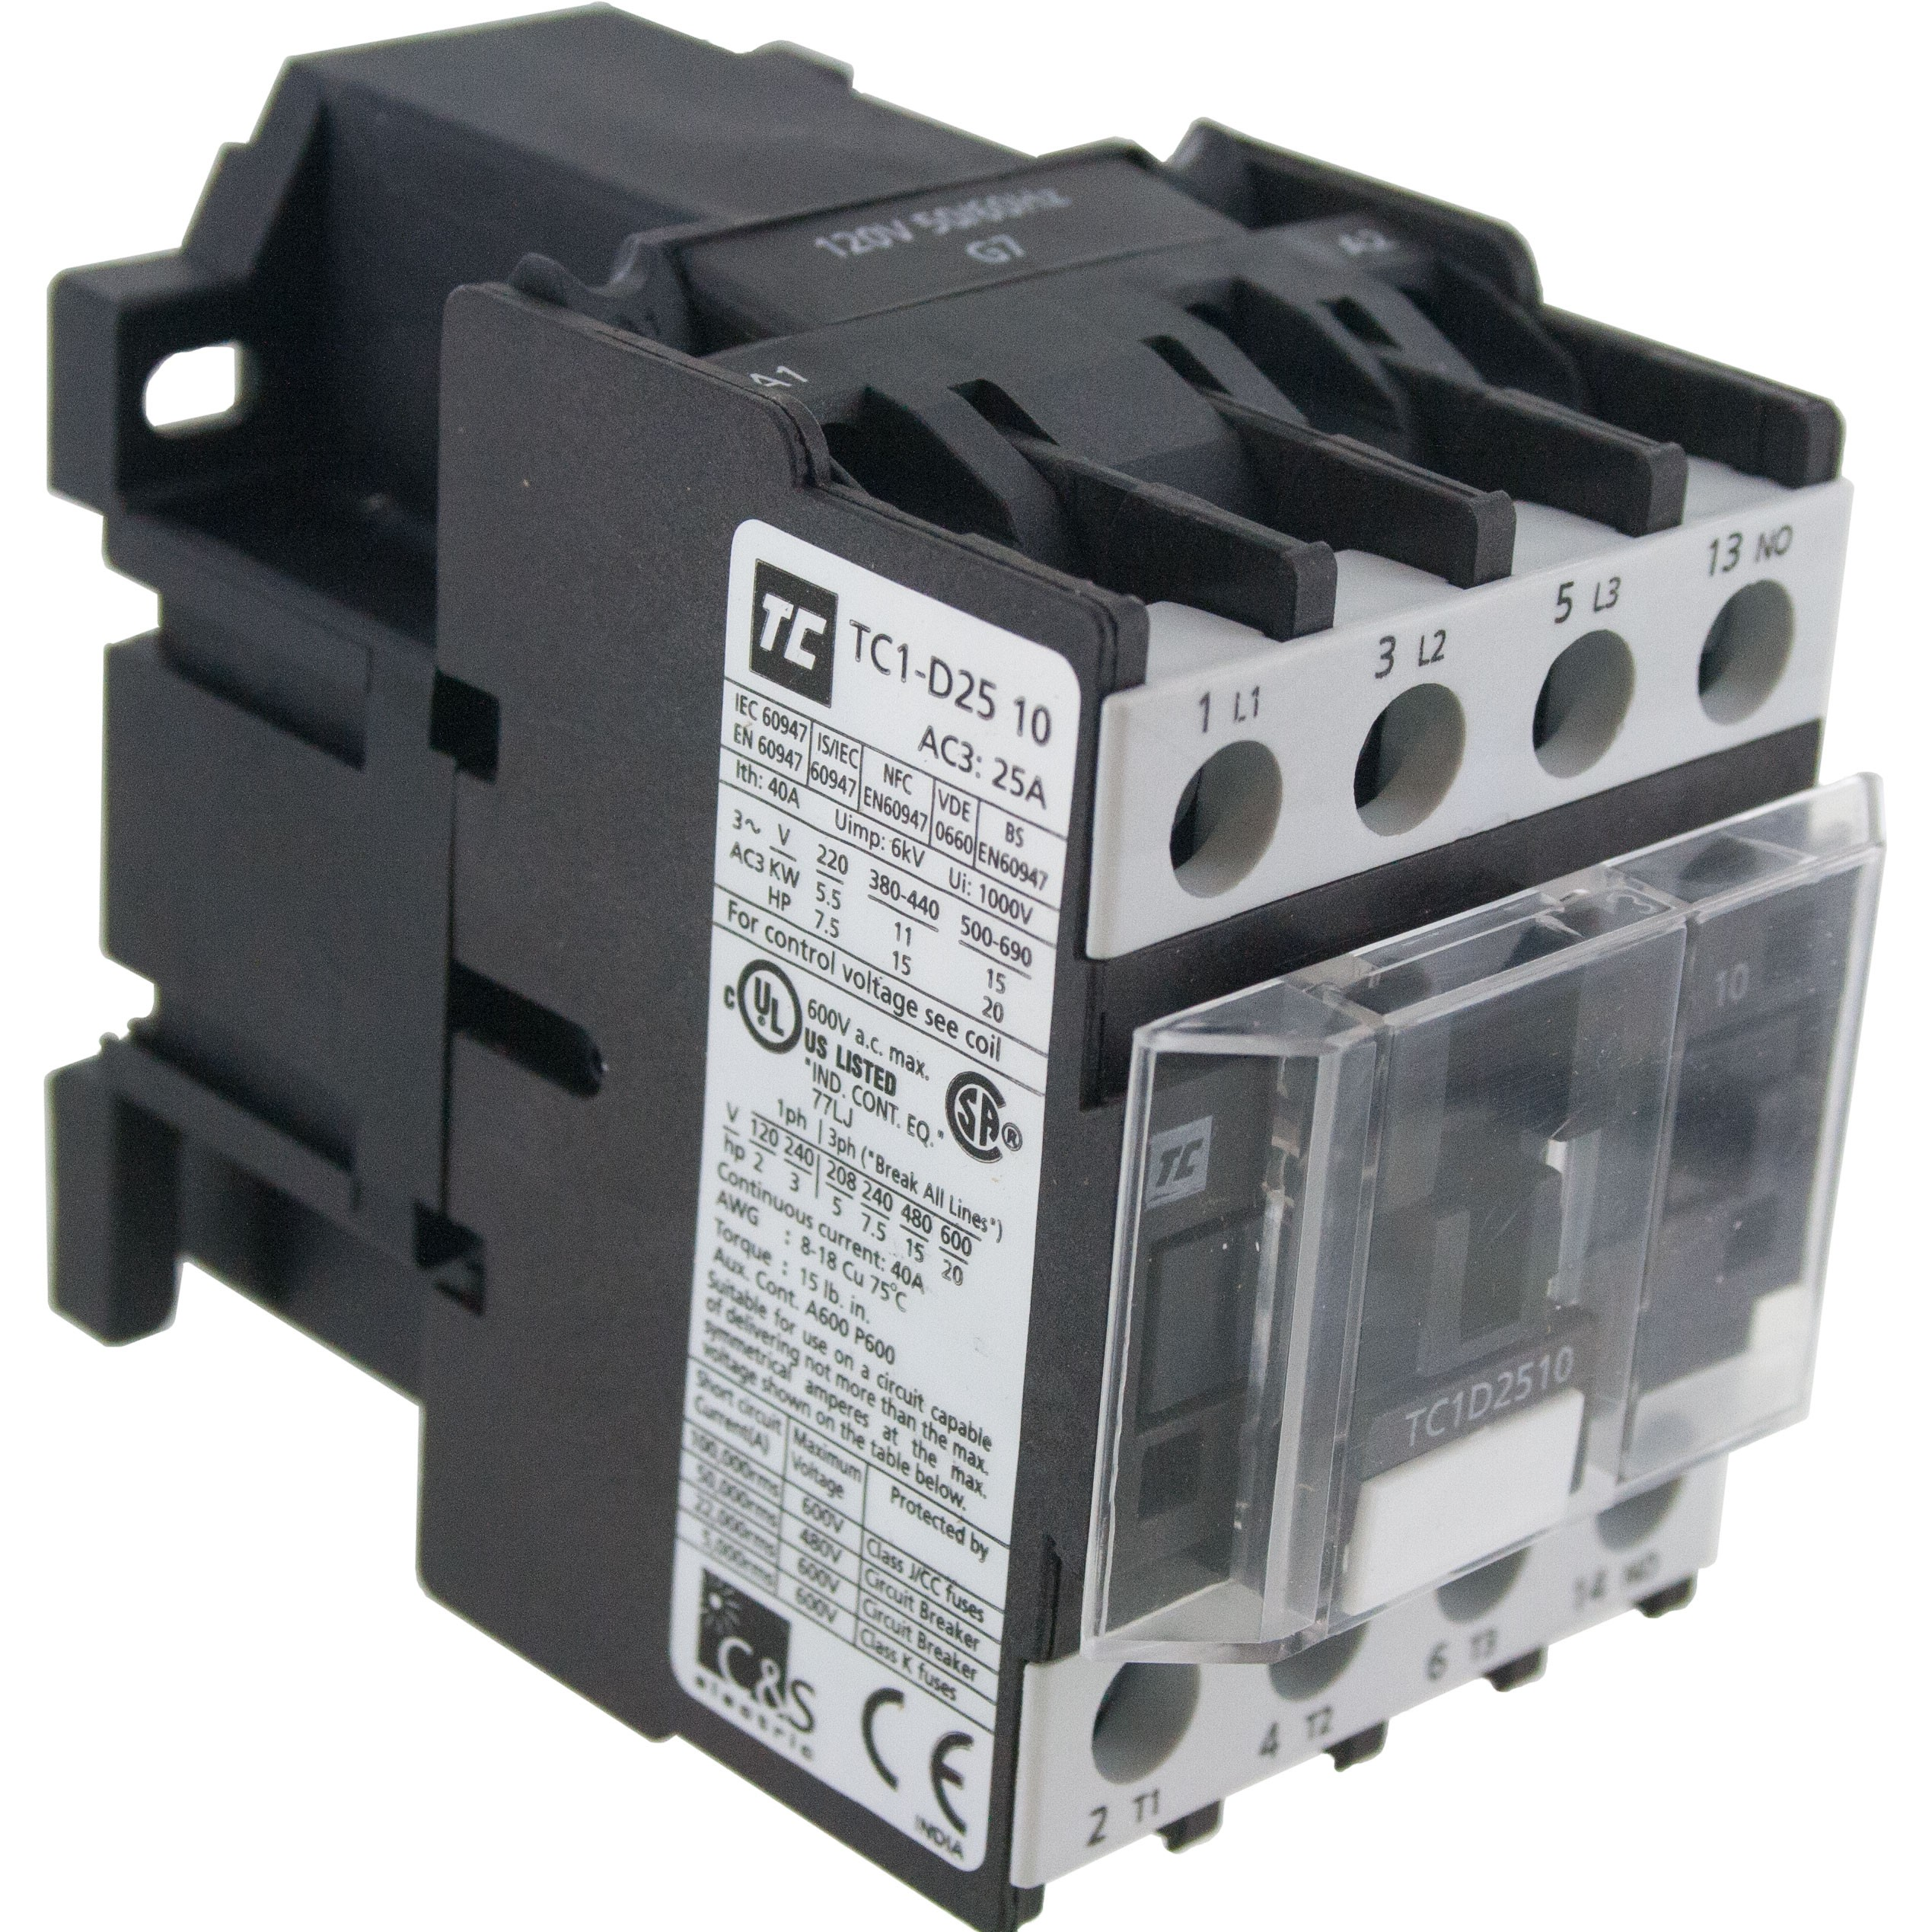 3 Pole Contactor 25 Amp 1 N/O 220 Volt AC Coil Angle